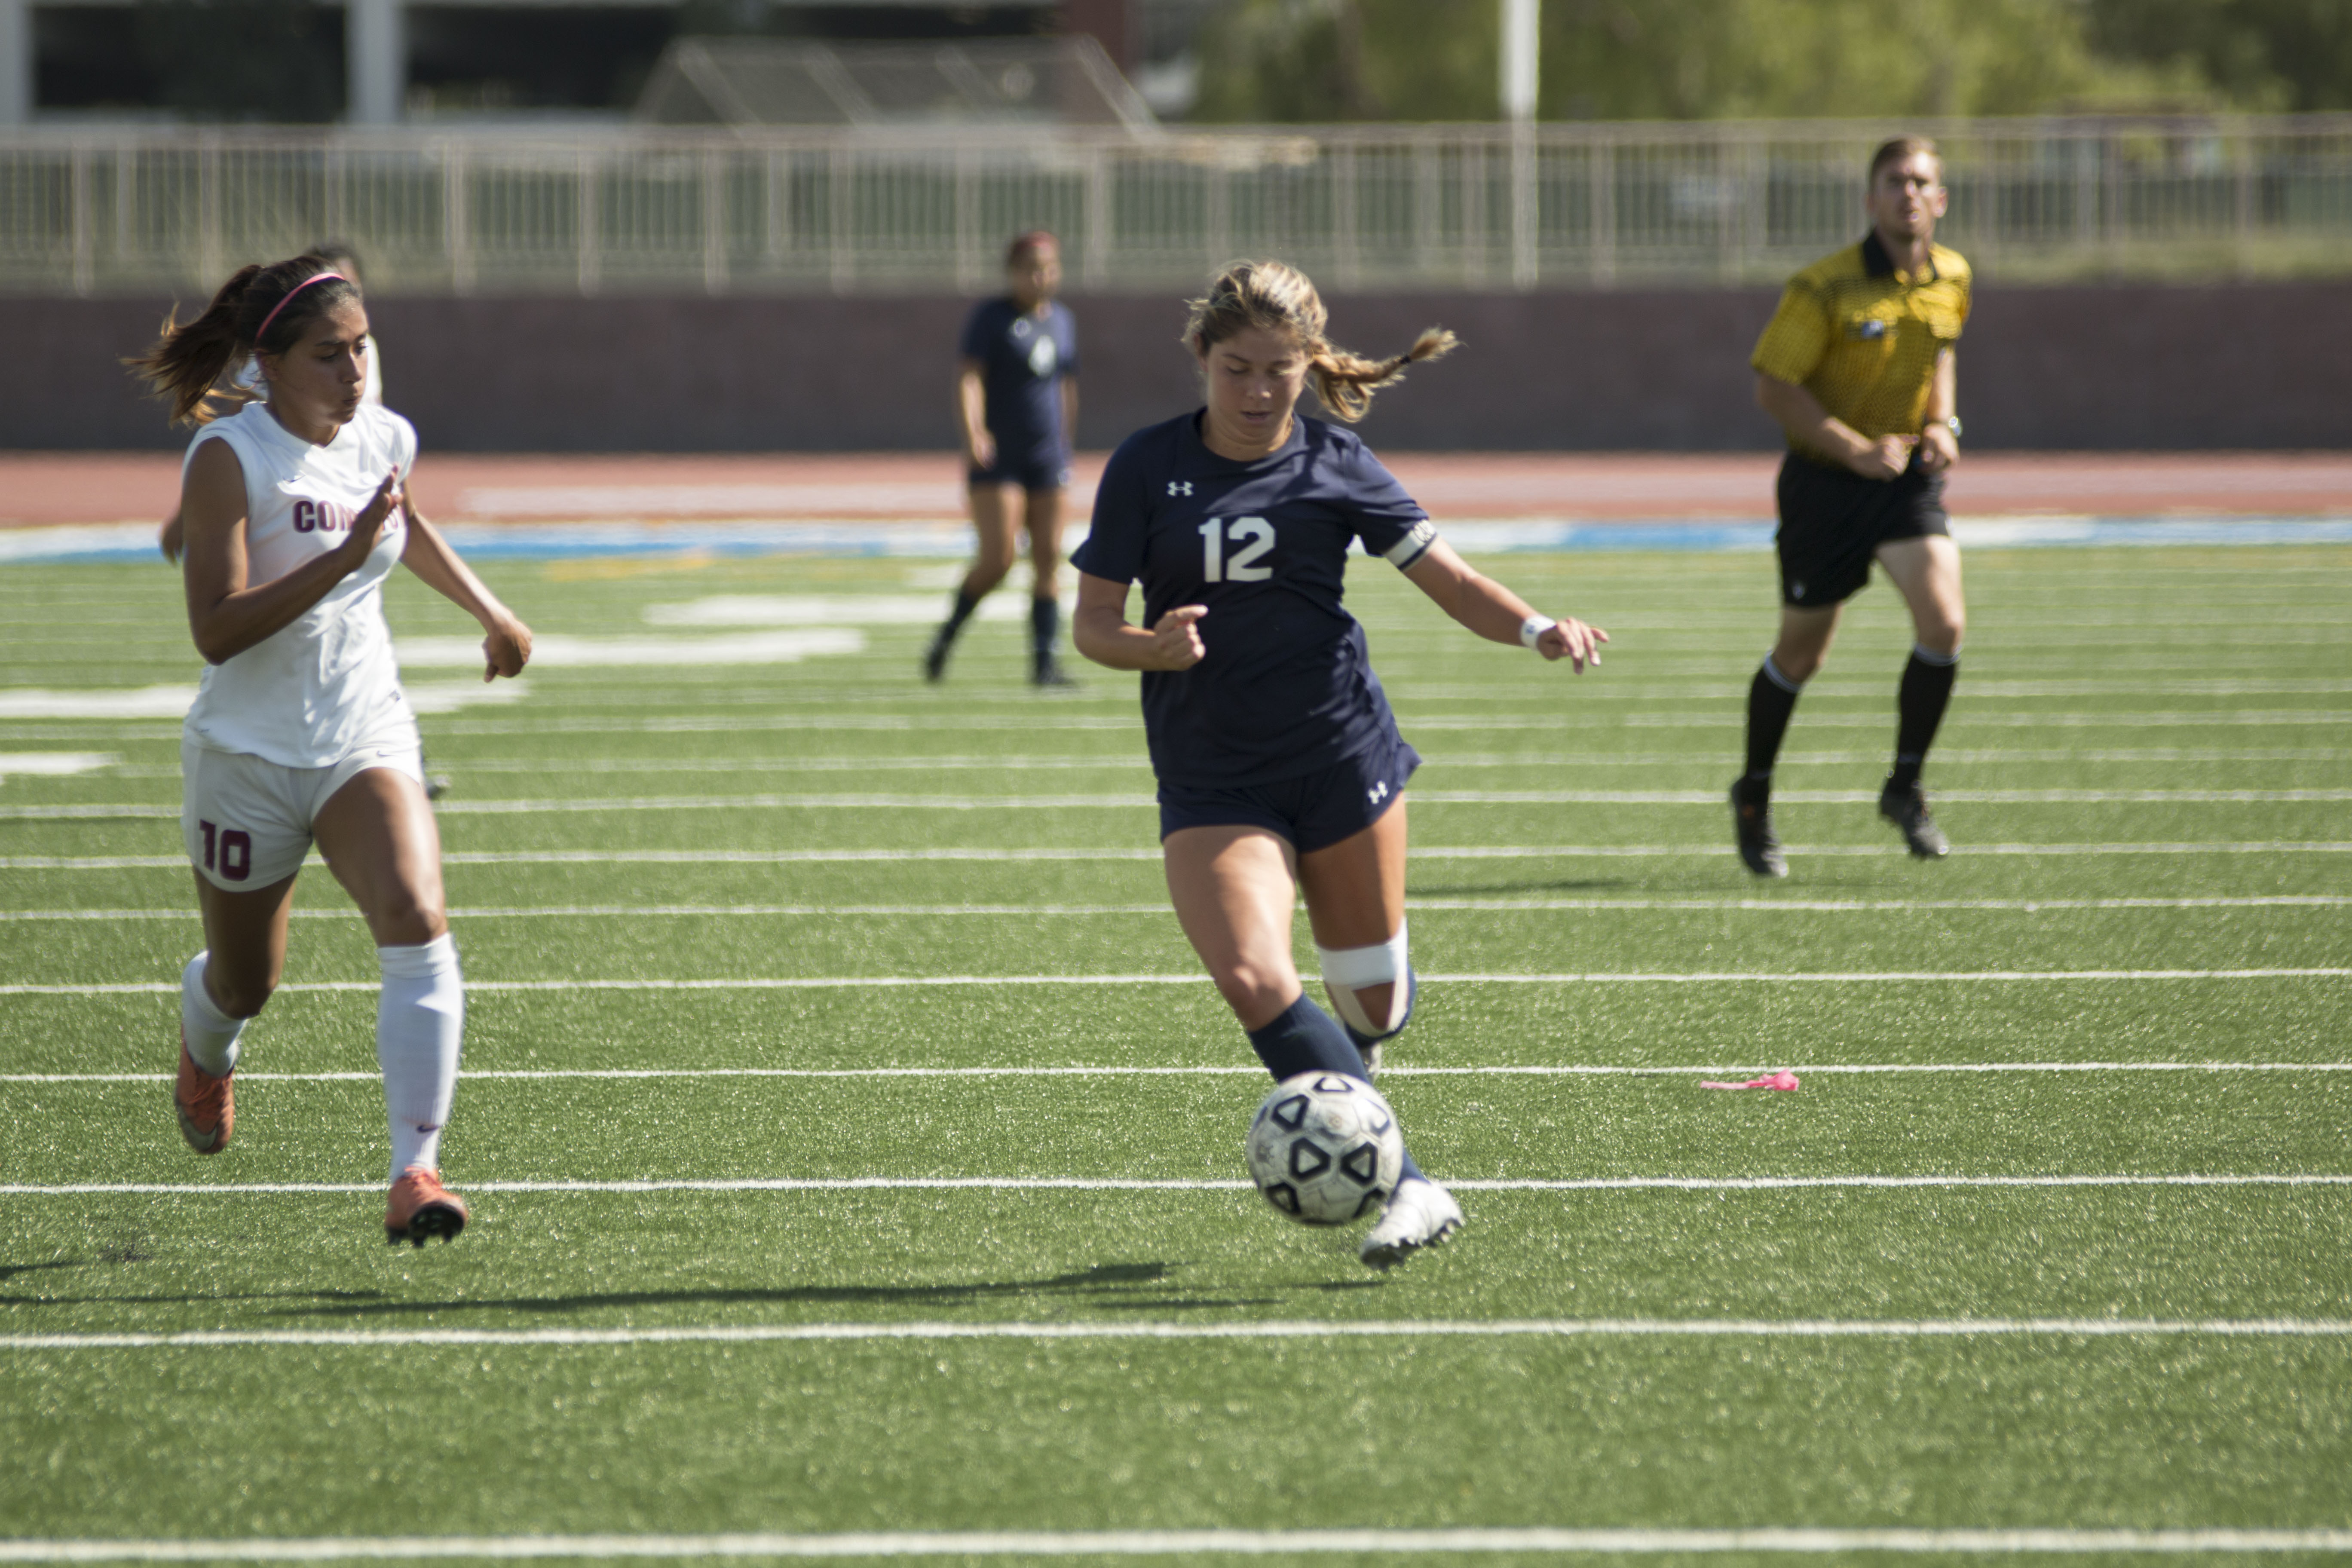 El Camino women's soccer team wins conference opener in a rout